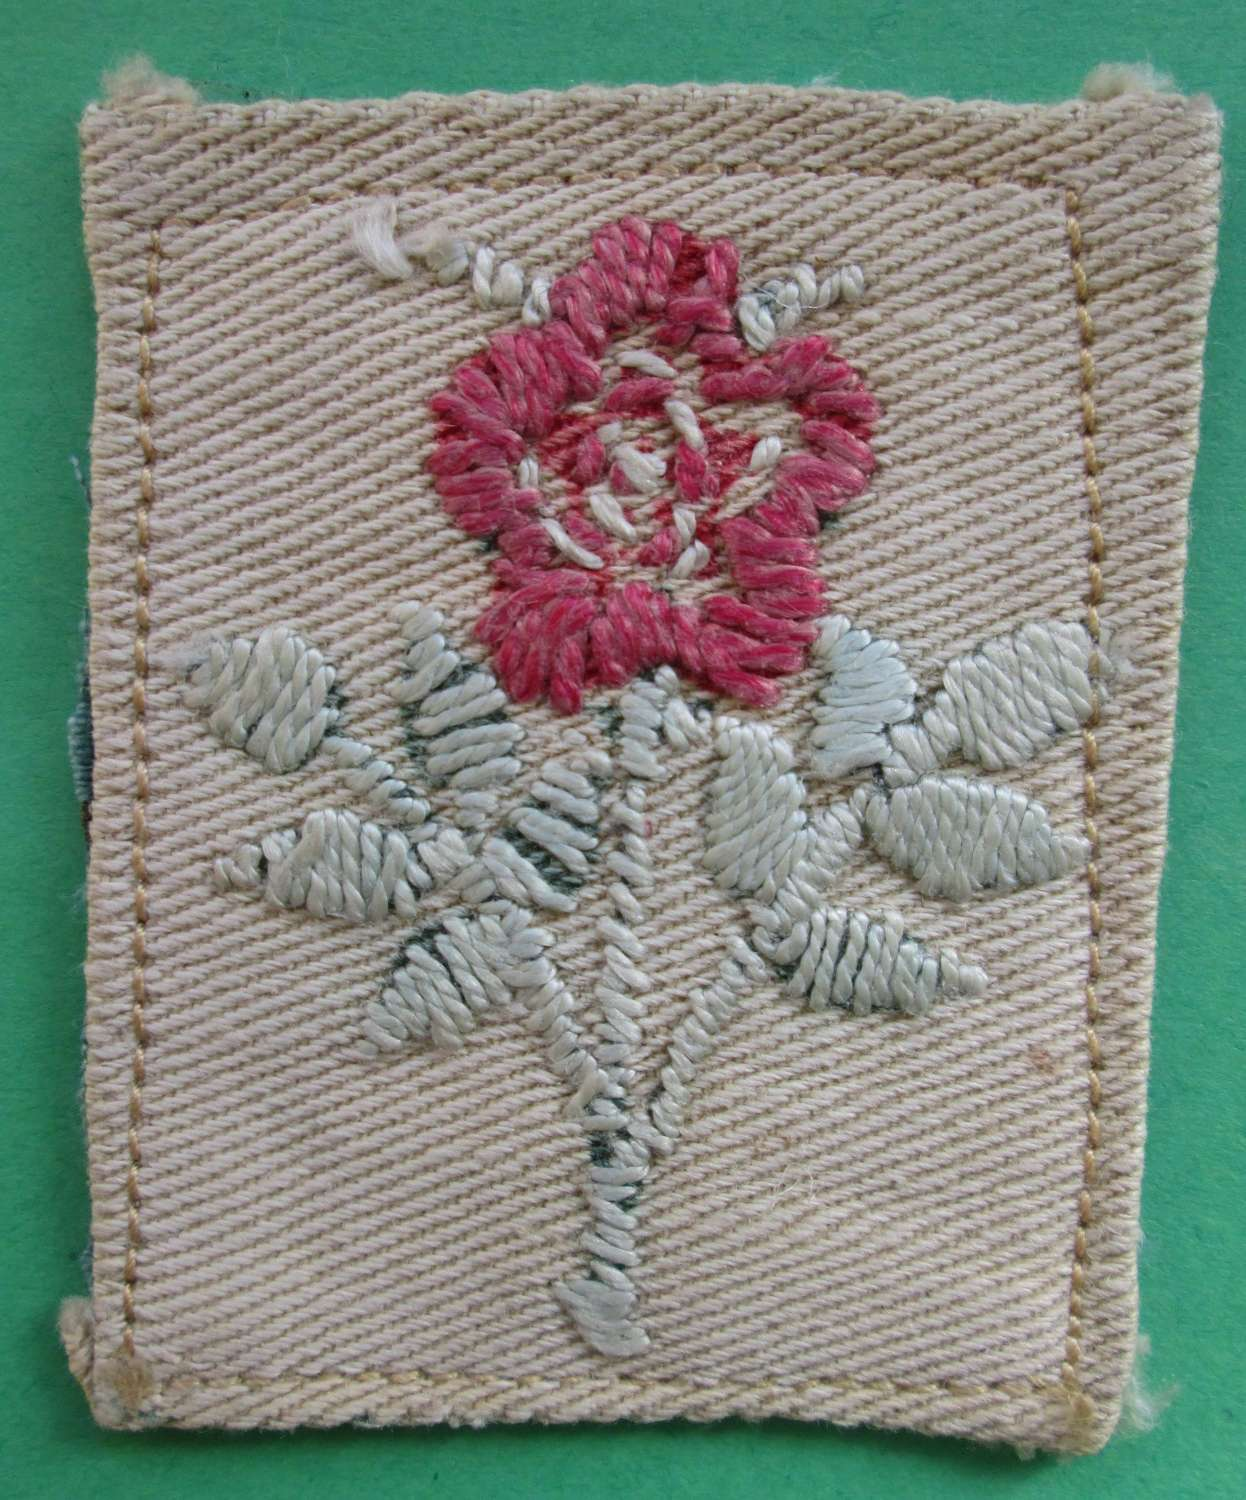 55th INFANTRY DIVISION FORMATION PATCH